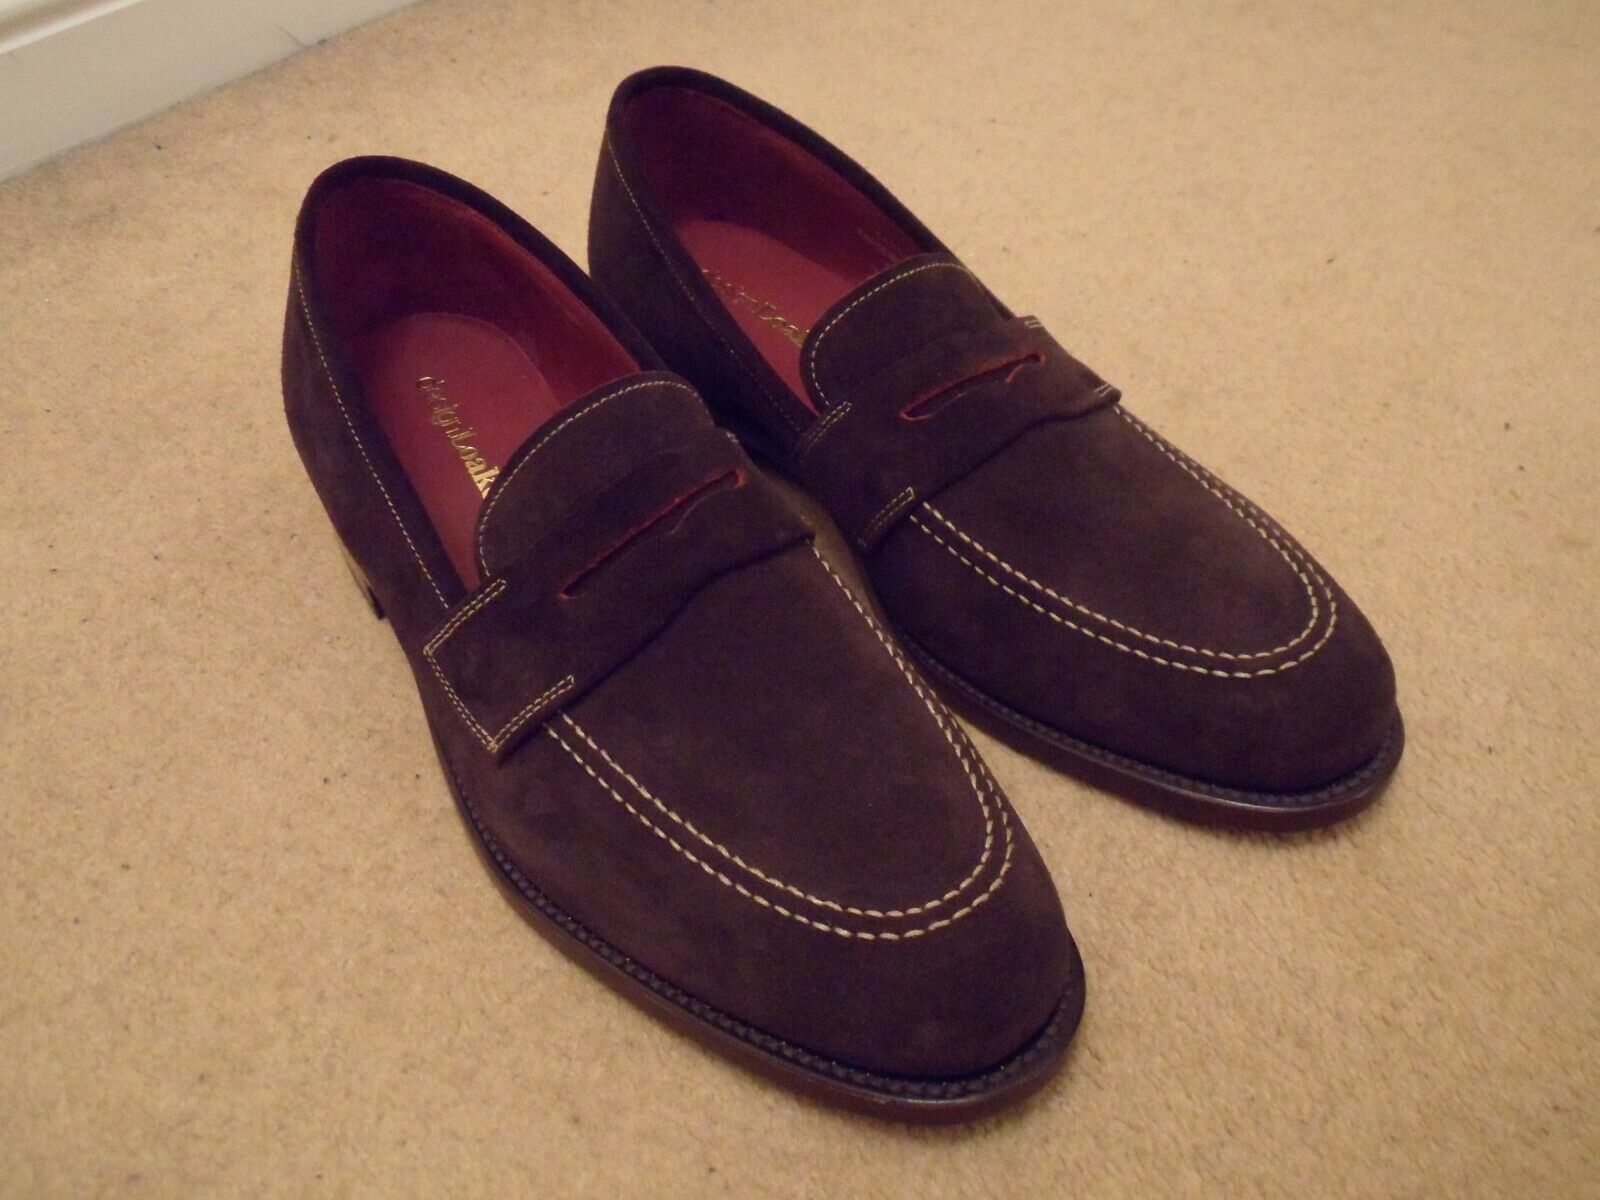 NEW Loake CAMDEN SADDLE F Brown Suede Leather Slip On Loafers Size UK 8 EU 42